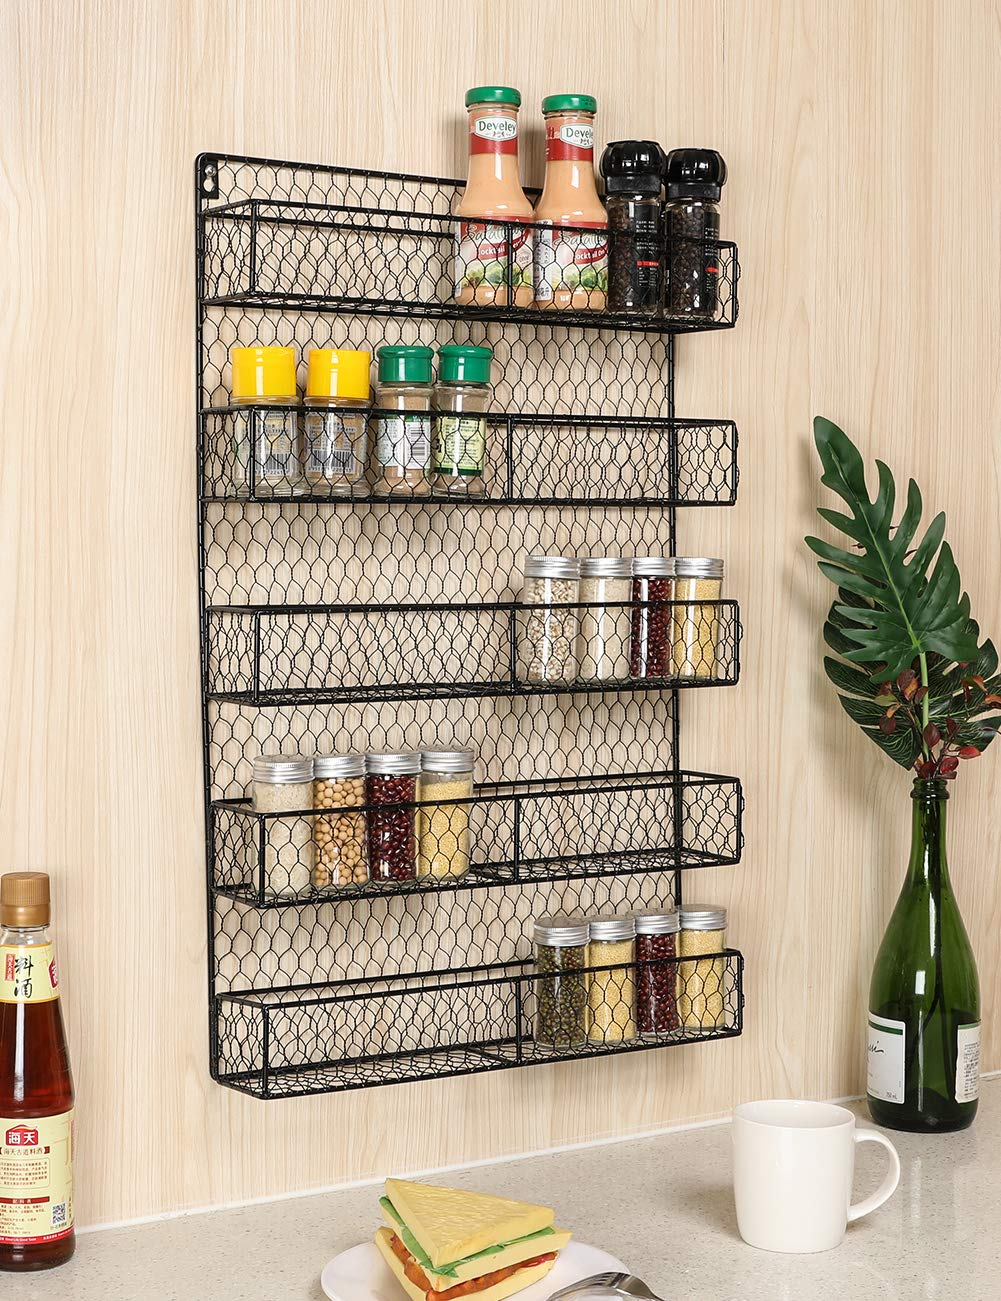 IZLIF Spice Rack Organizer 5 Tier Country Rustic Chicken Herb Holder | Wall Mounted Storage Rack for Storing Spices Household Items,Black by IZLIF